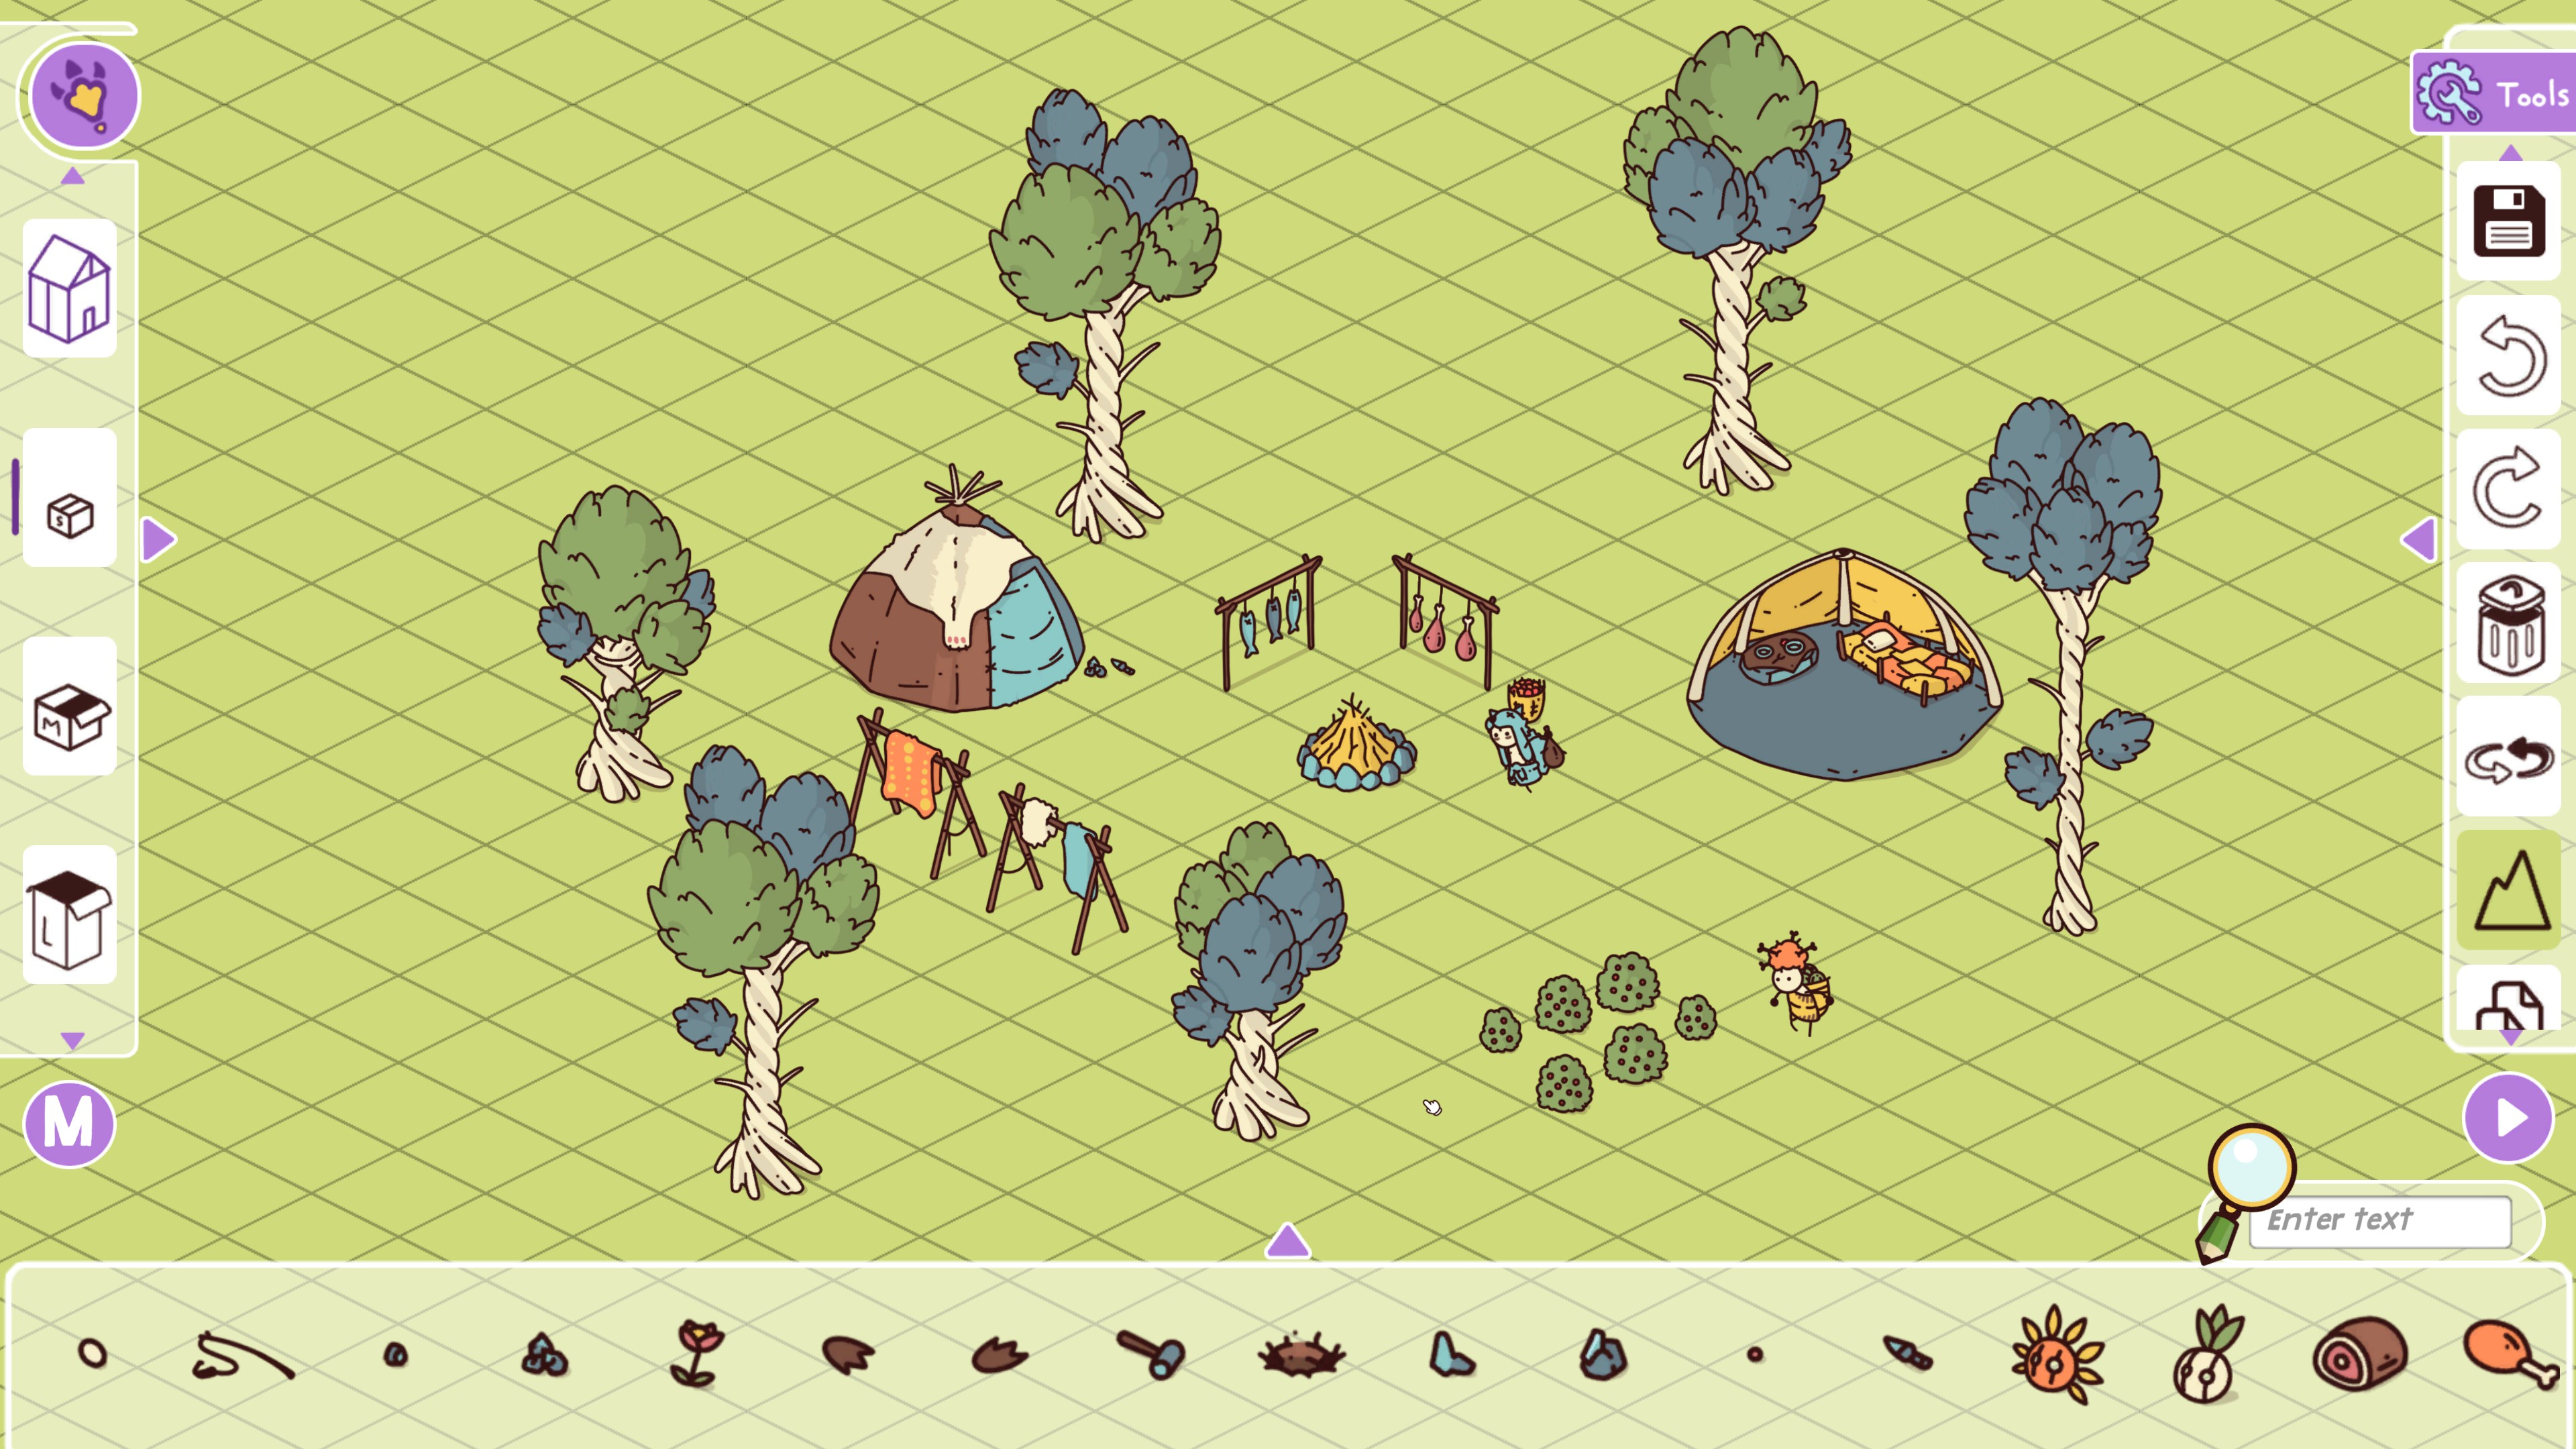 Hidden Through Time. Simple stone-age level with two people and two tents around a fire. Menus for adding items and a grid across the level are visible.